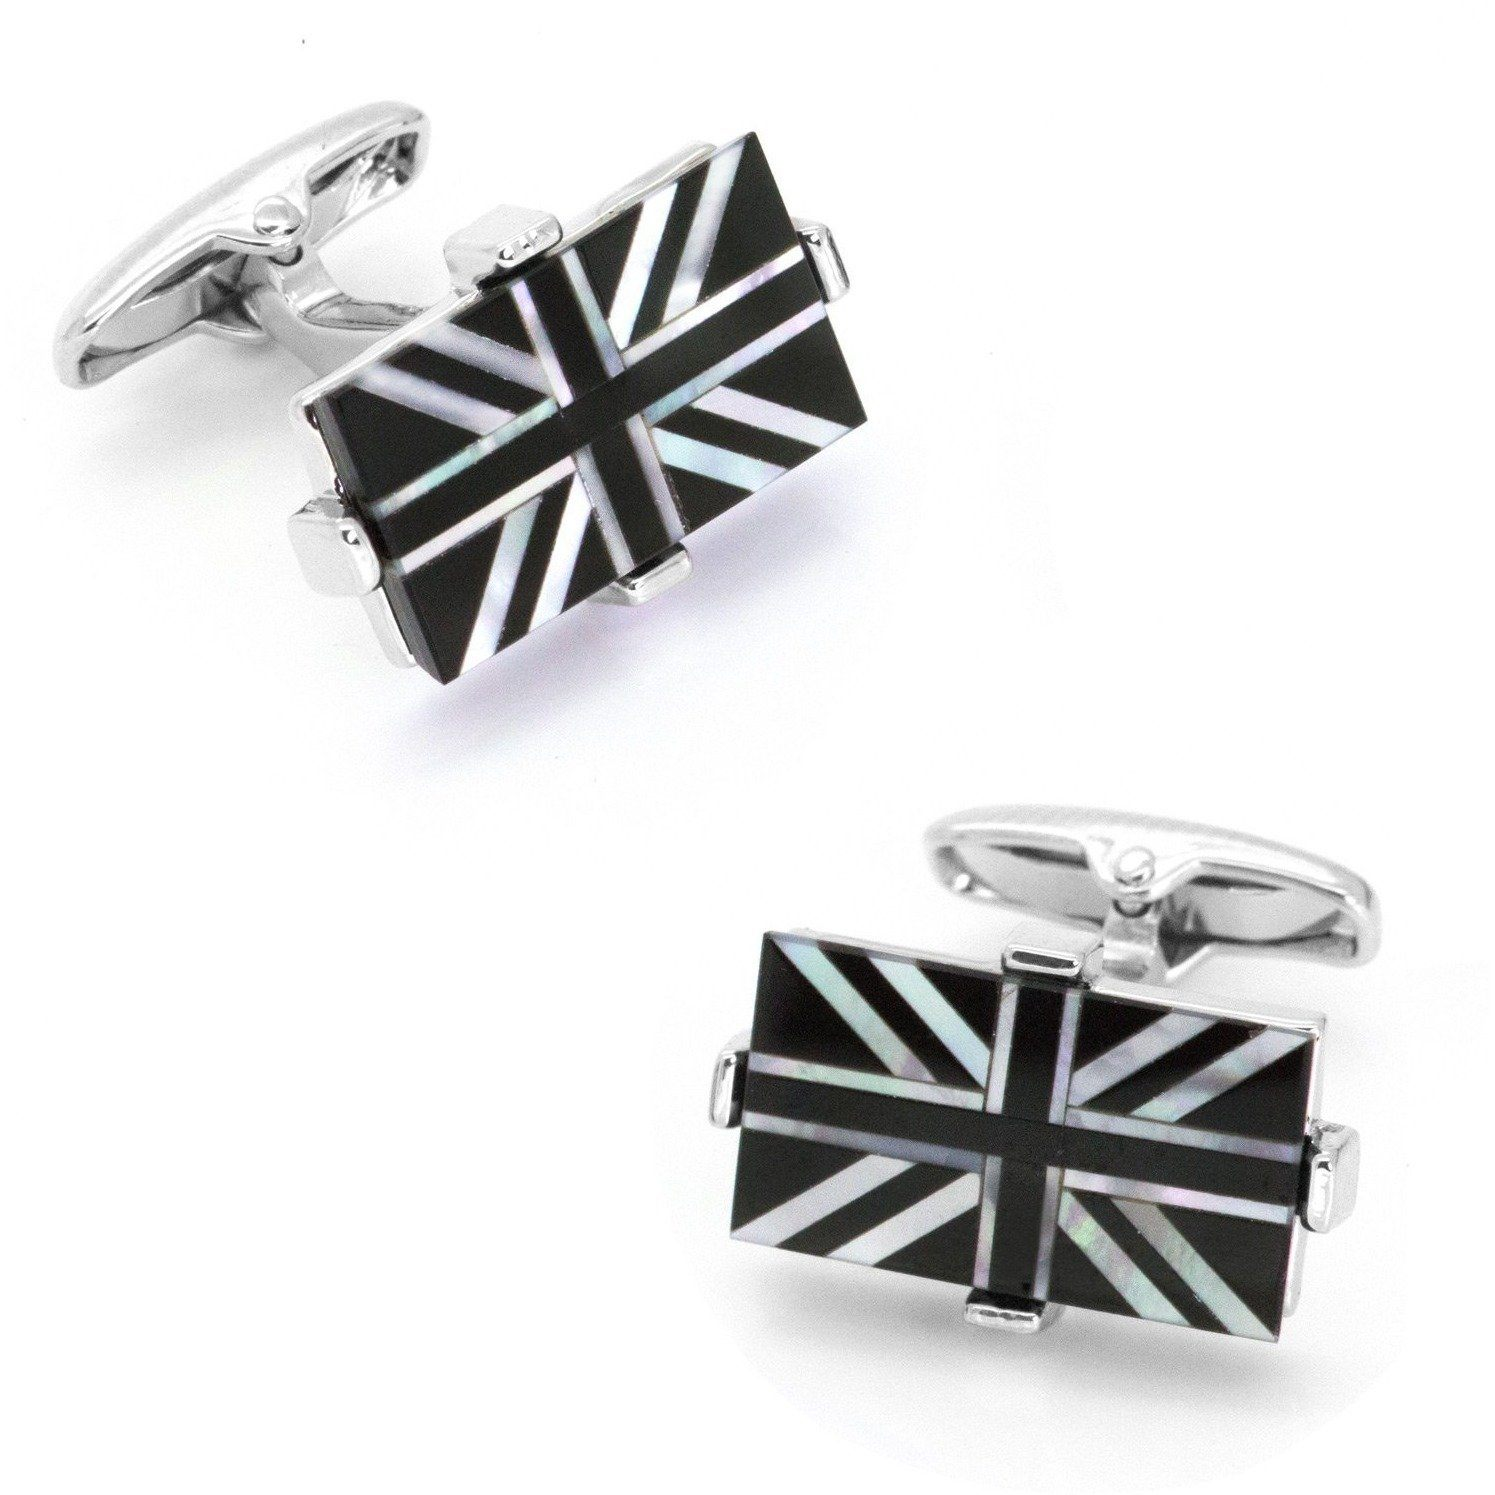 Union Jack - Flag of England UK Cufflinks in Onyx and Mother of Pearl Clinks Australia